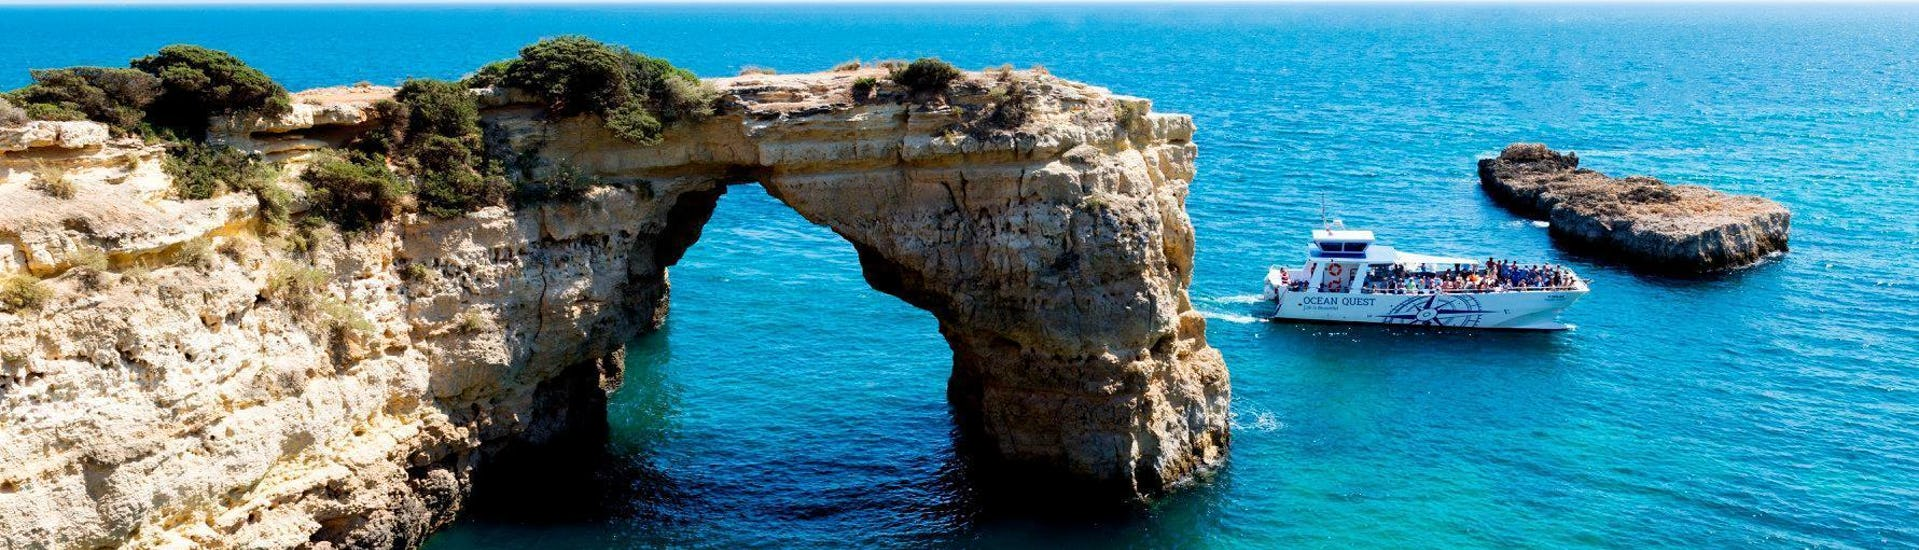 During the catamaran tour from Vilamoura heading to Caves of Benagil organised by Ocean Quest, tourists are marvelling at the stunning rock formations.